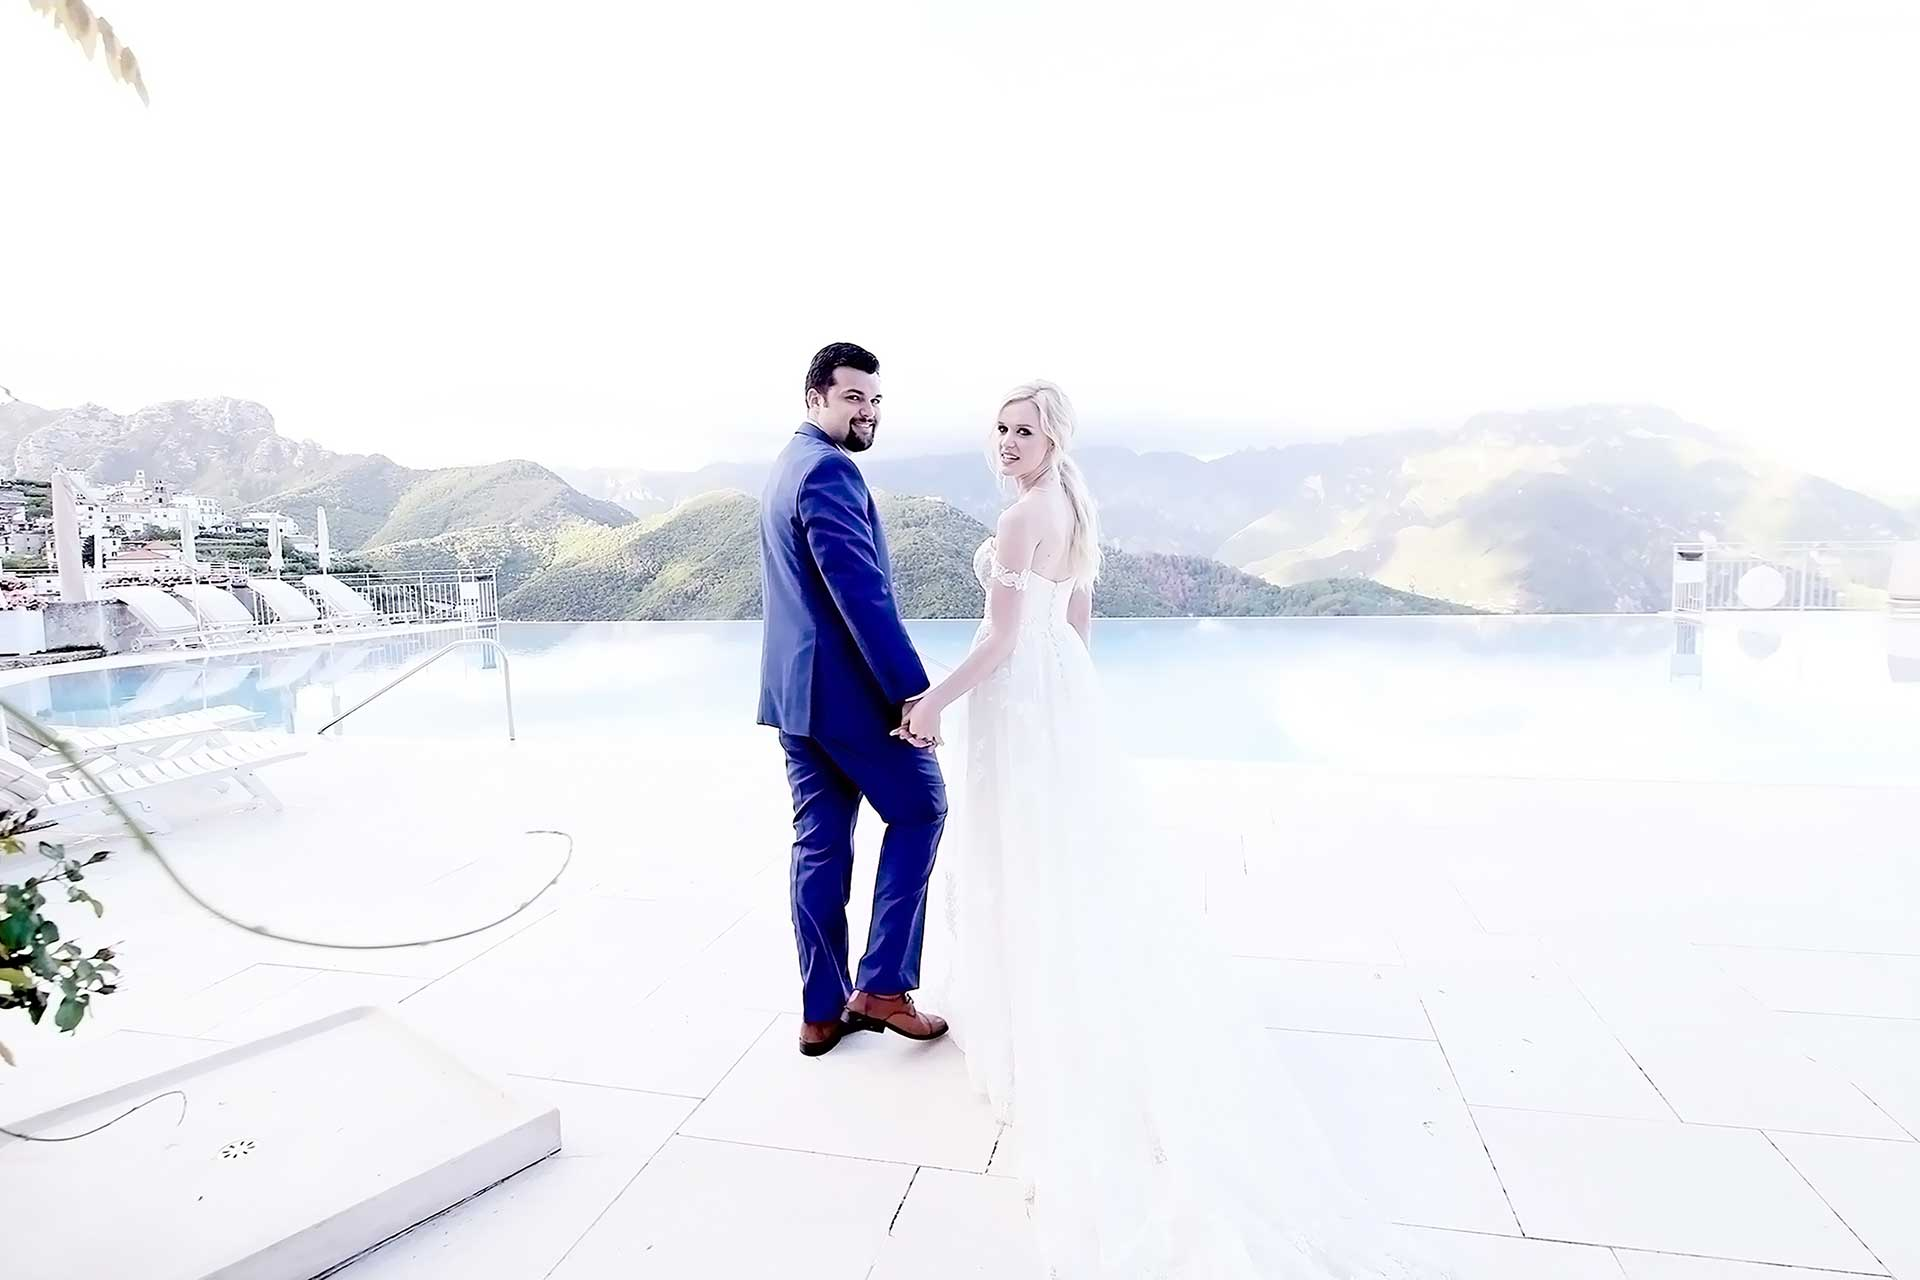 Luxury Protestant Destination Catholic Symbolic Protestant Vows Wedding Photographer Planner in Ravello Hotel Caruso Belmond Ravello Amalfi Coast Italy Claudia Francese Photography Sisters